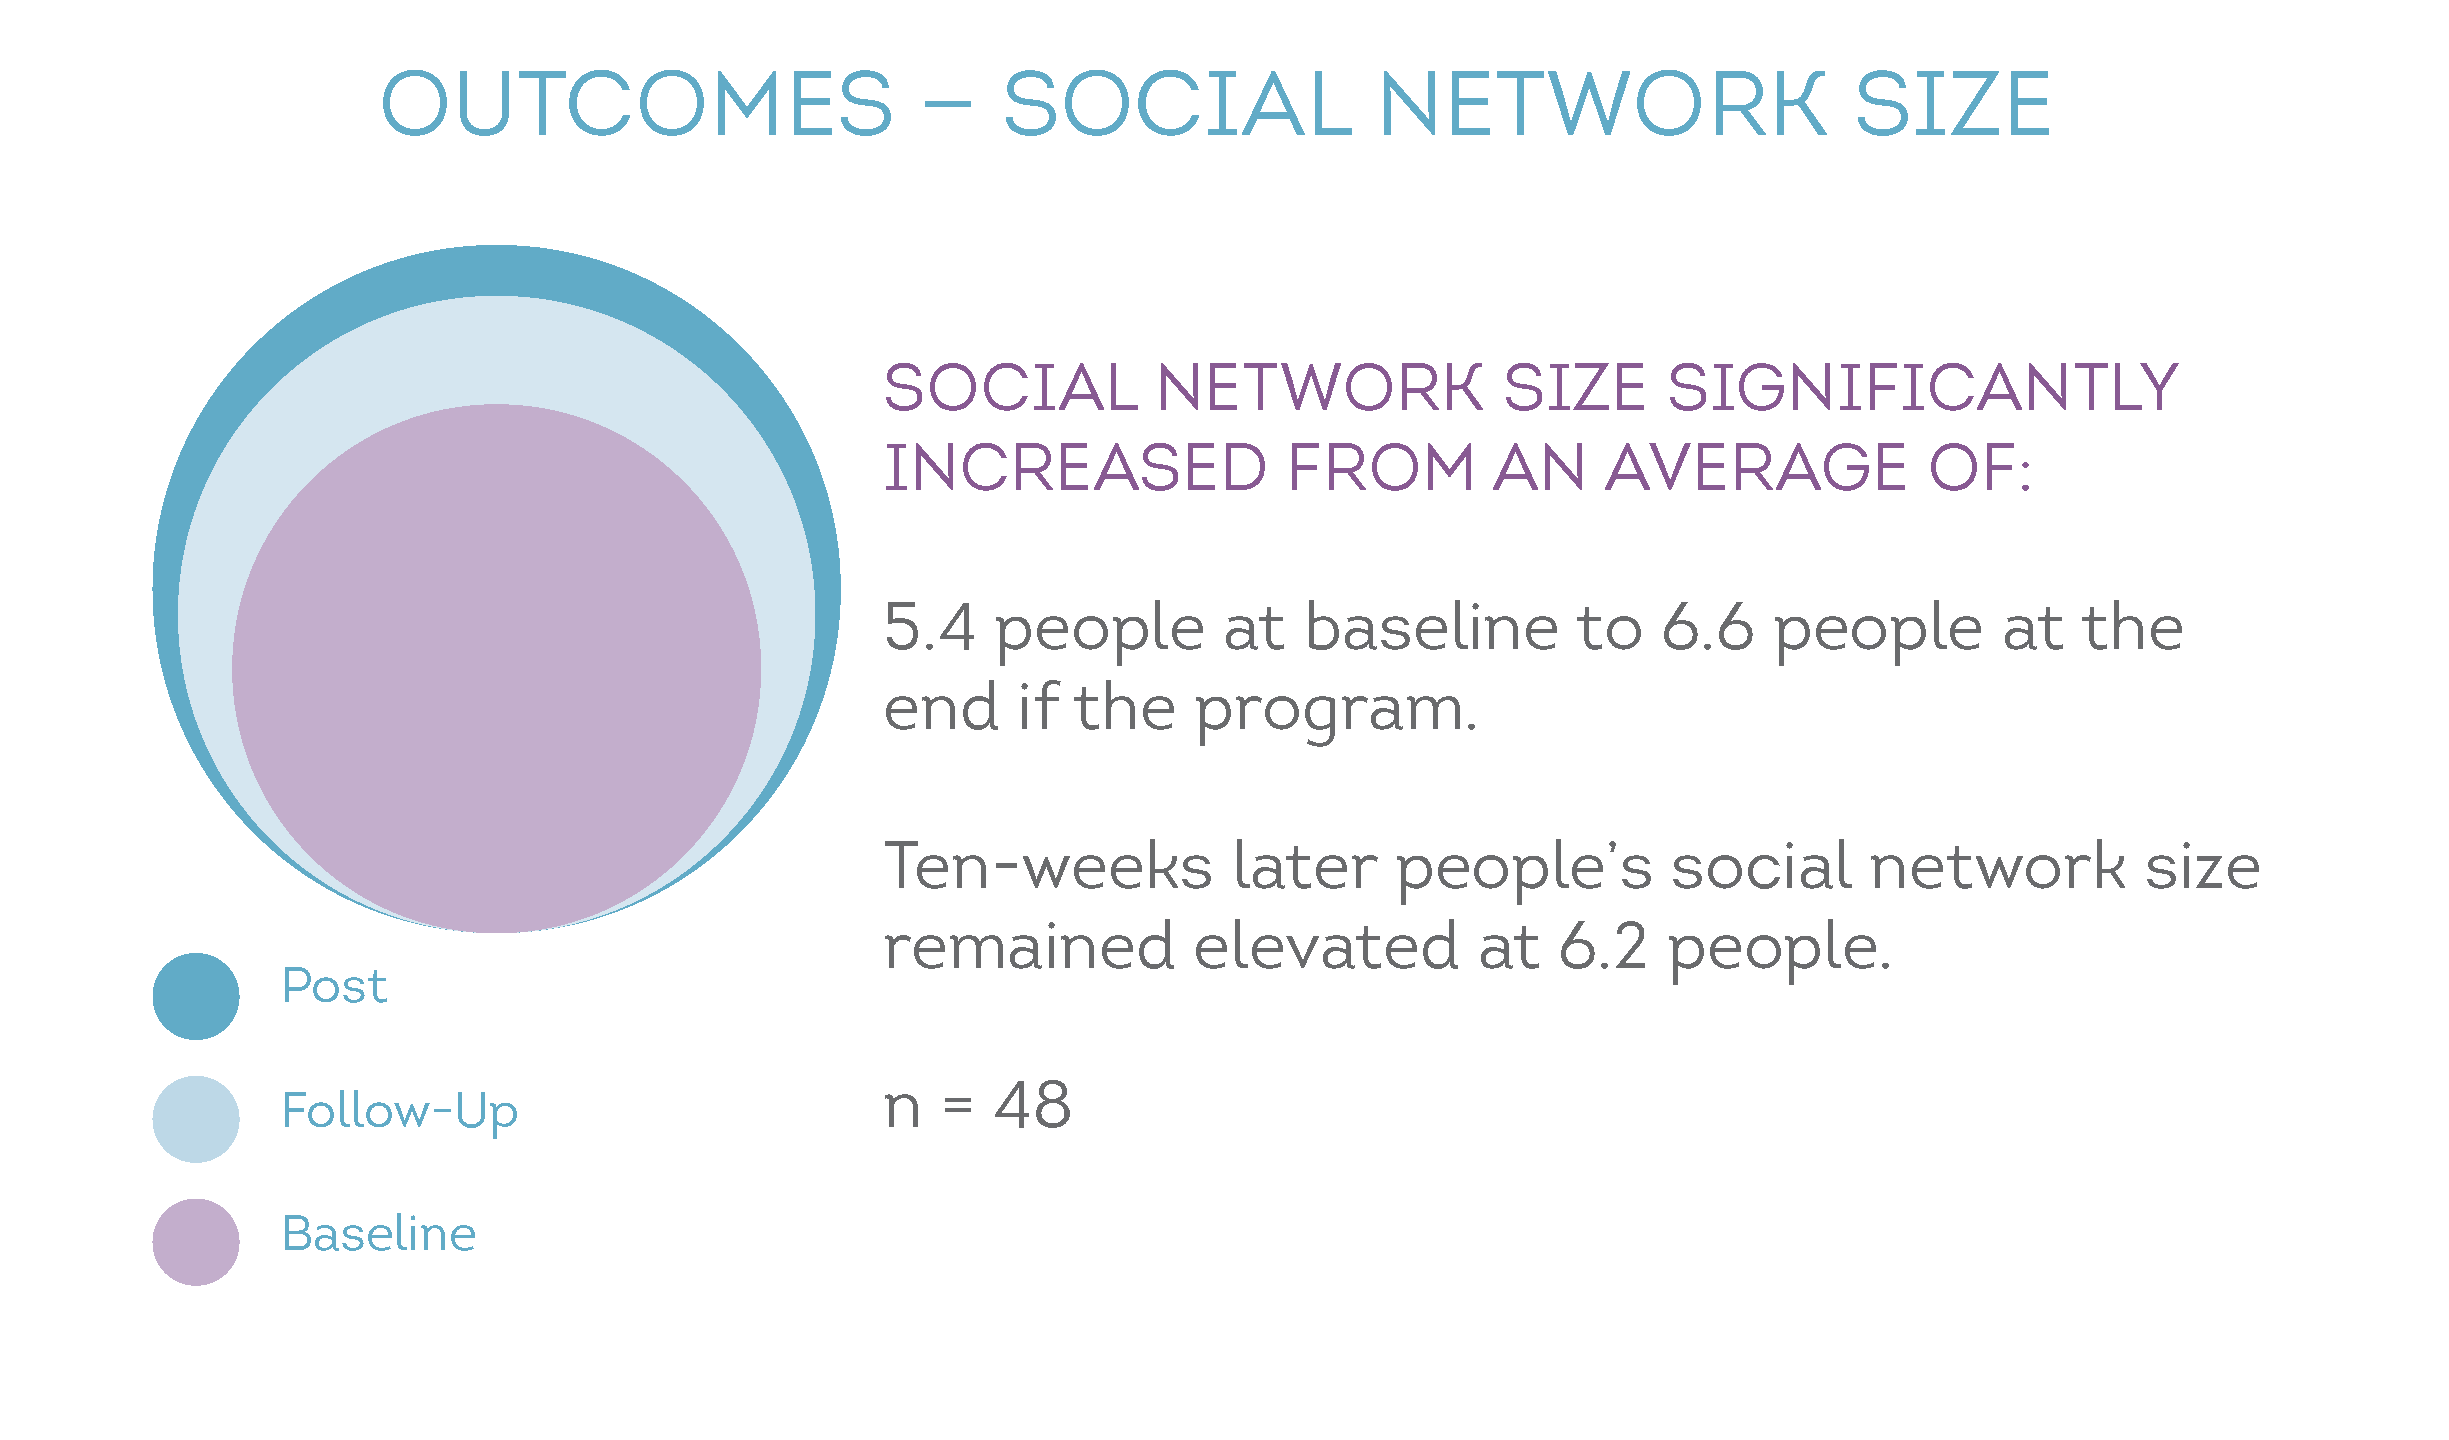 FDP participant outcomes on social network size. Participants' social network size significantly increased from an average of: 5.4 people at baseline, 7.0 people at the end if the program, and ten weeks later, social network size remained elevated at 6.7 people.